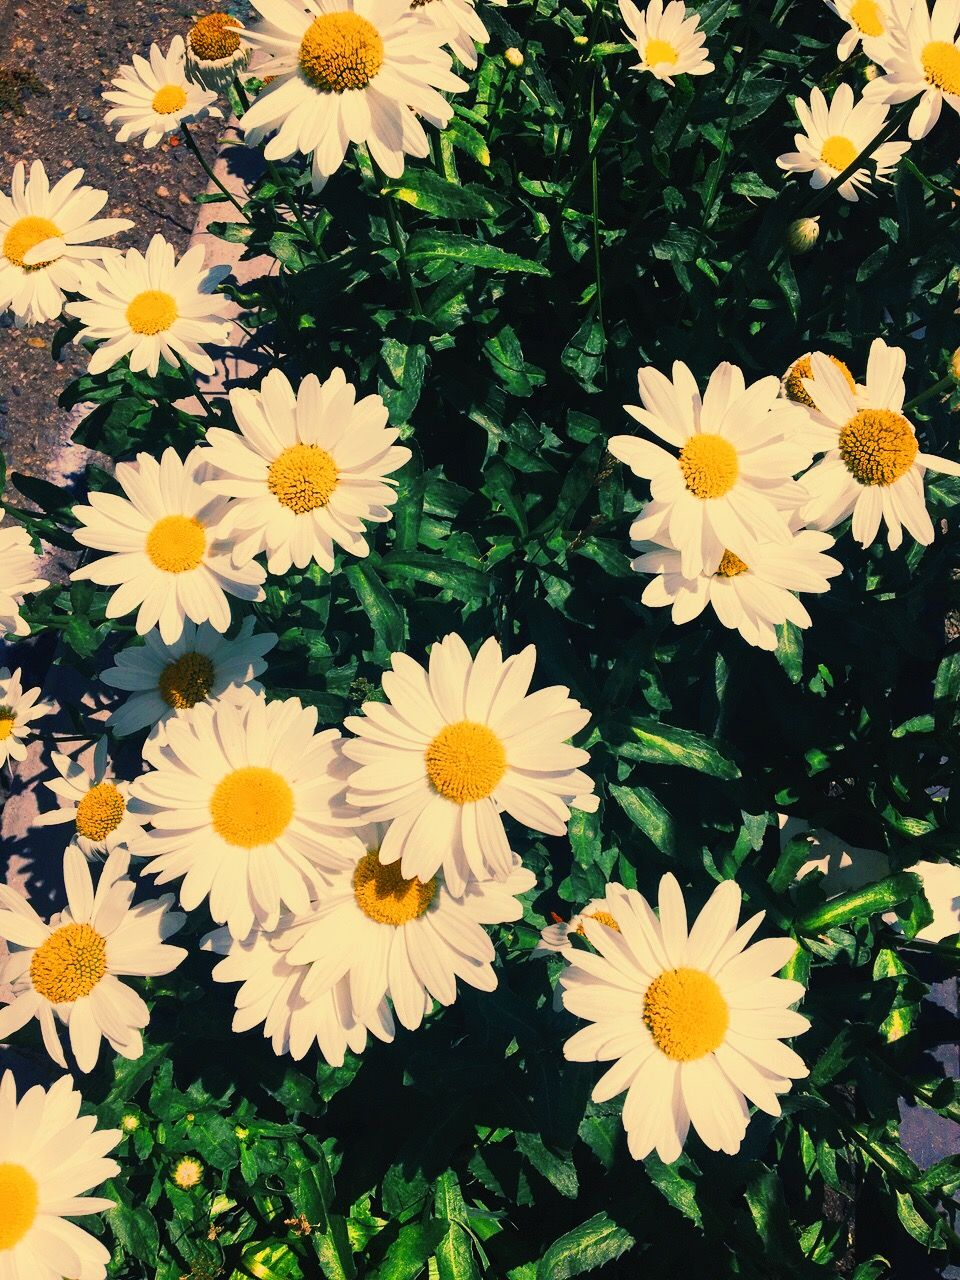 cute daisy wallpaper | iphone backgrounds in 2018 | pinterest